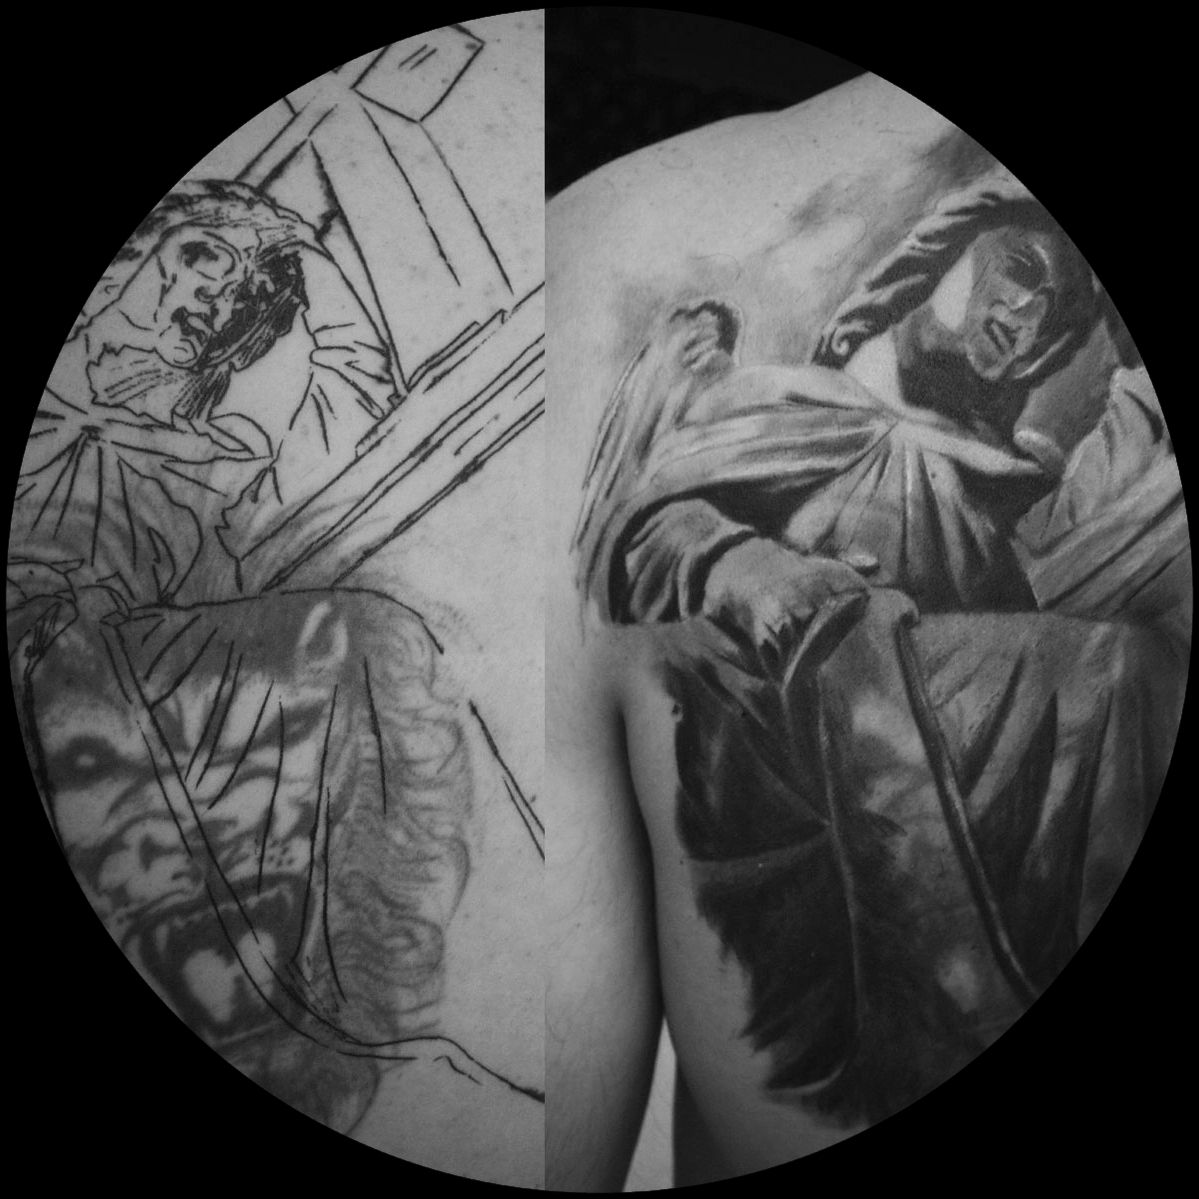 Cover Up 3